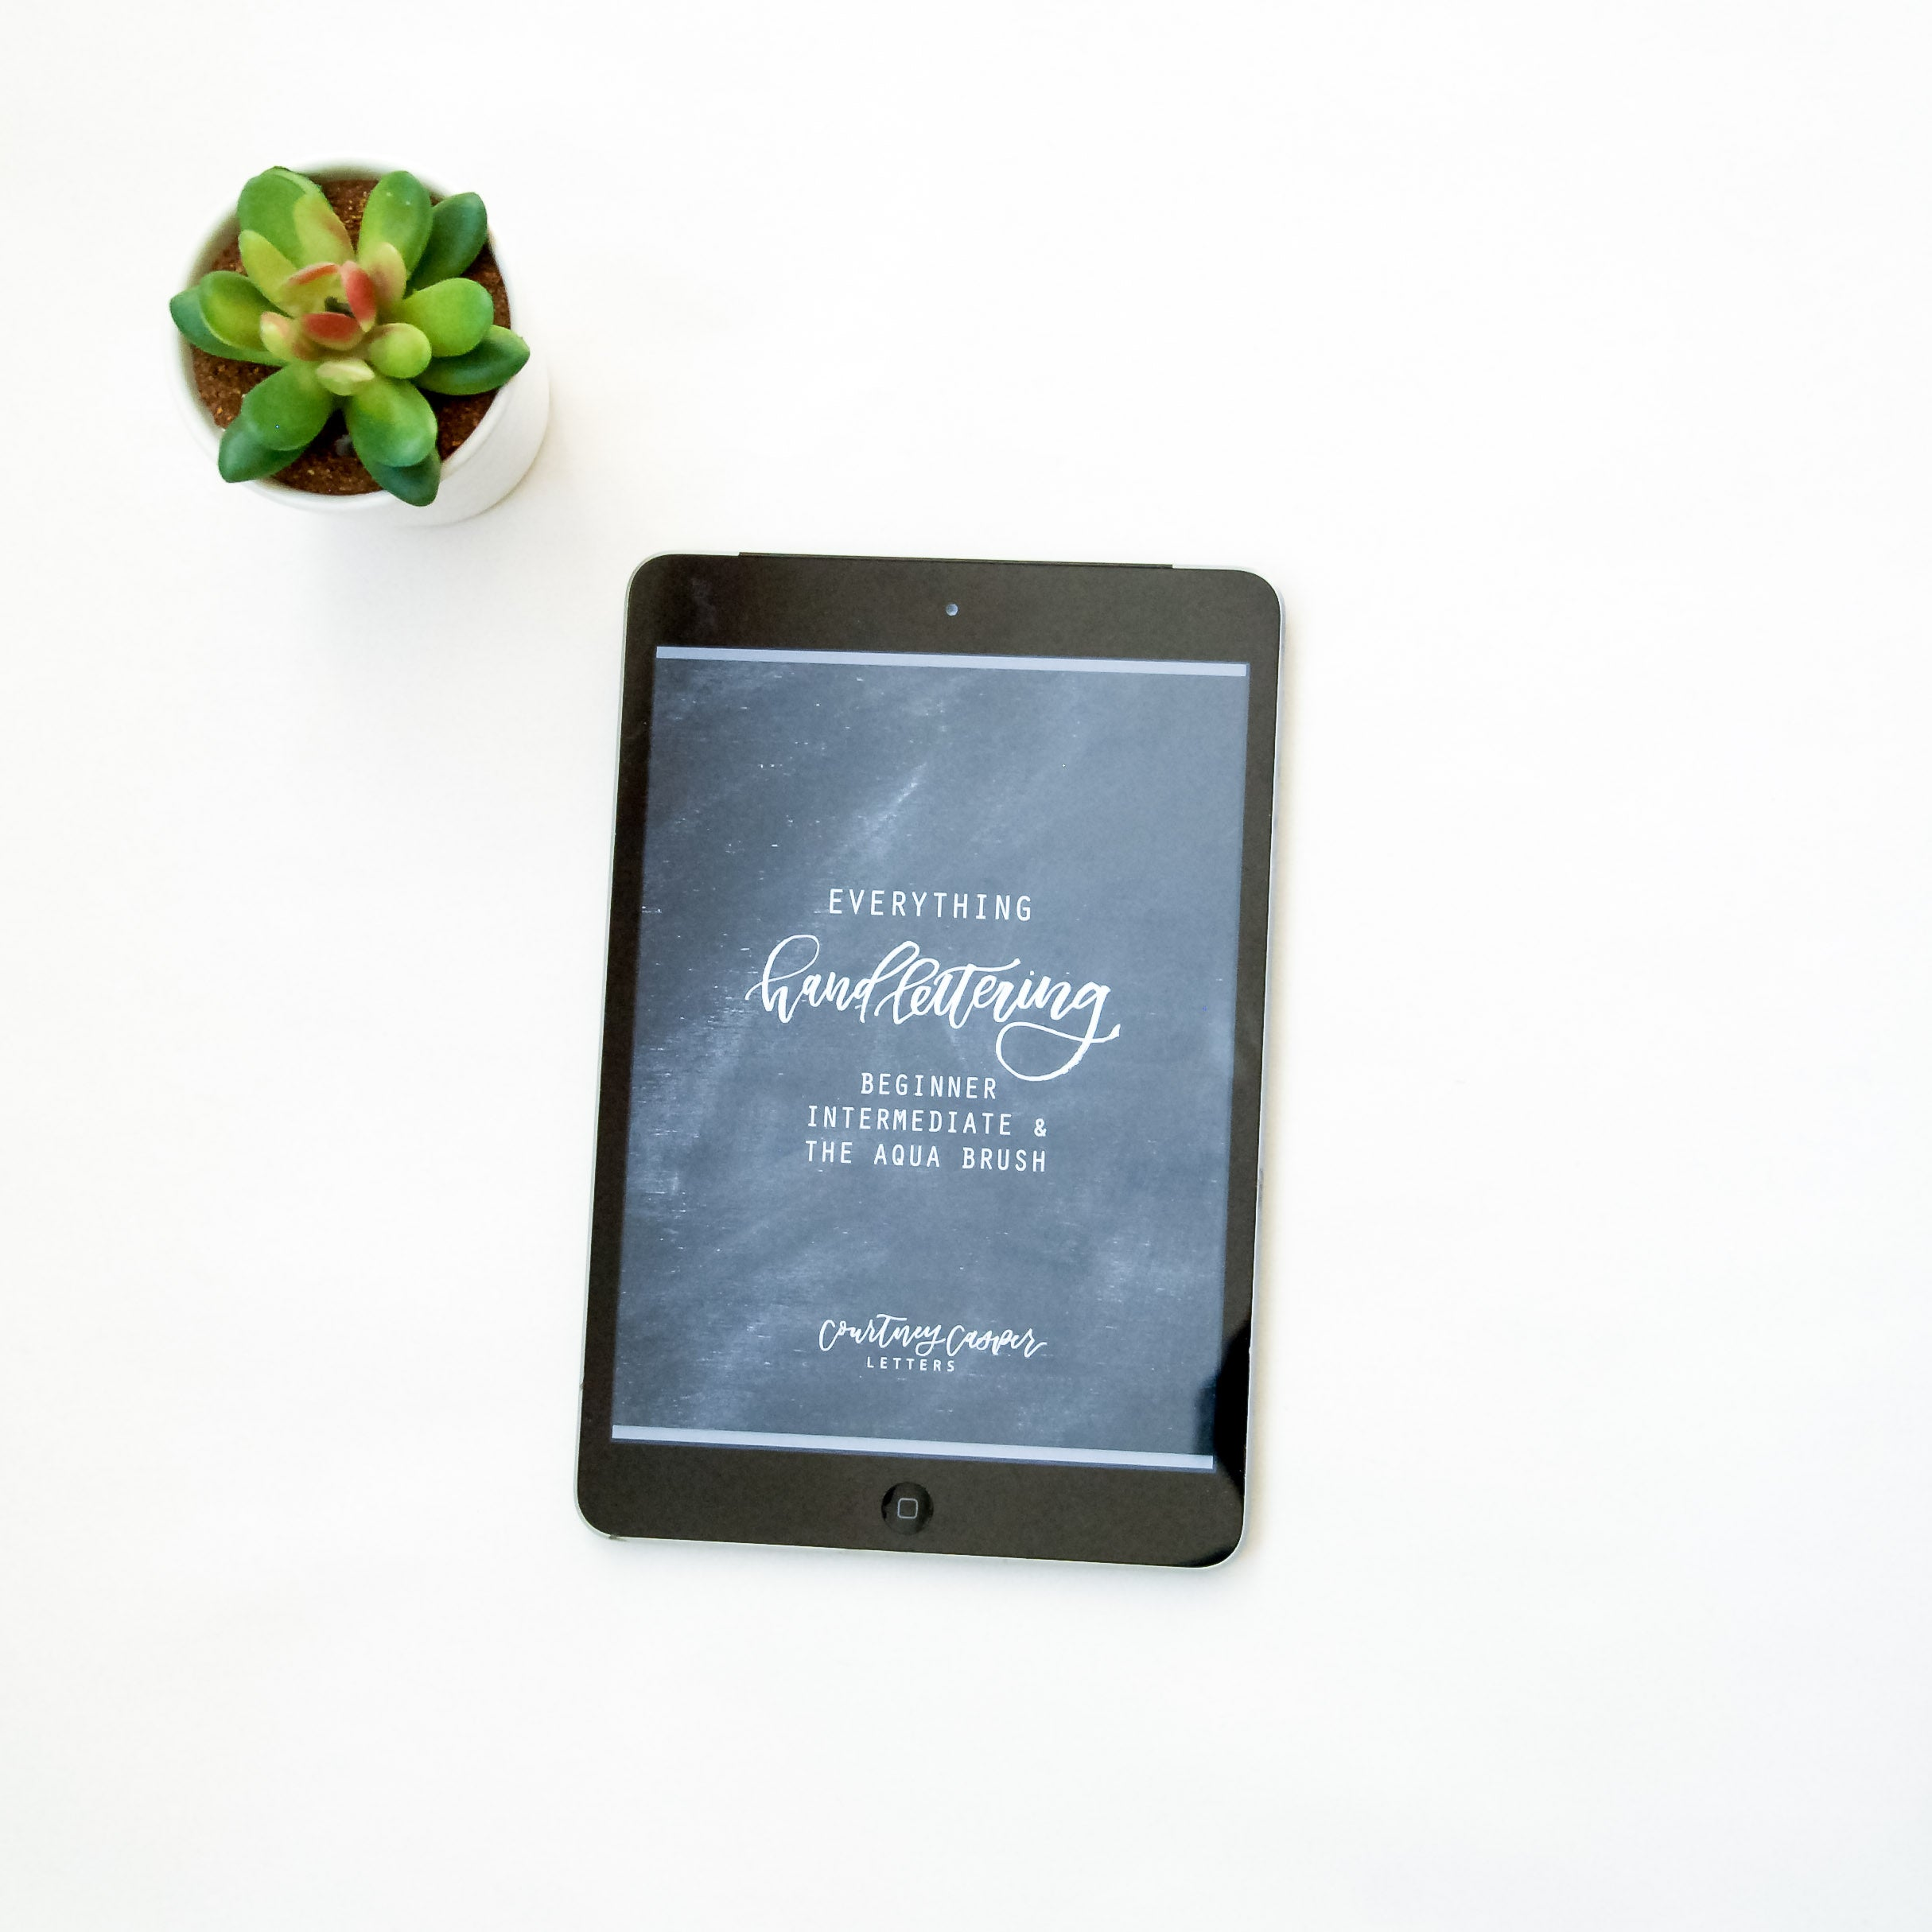 The EVERYTHING Workbook Download – Courtney Casper Letters